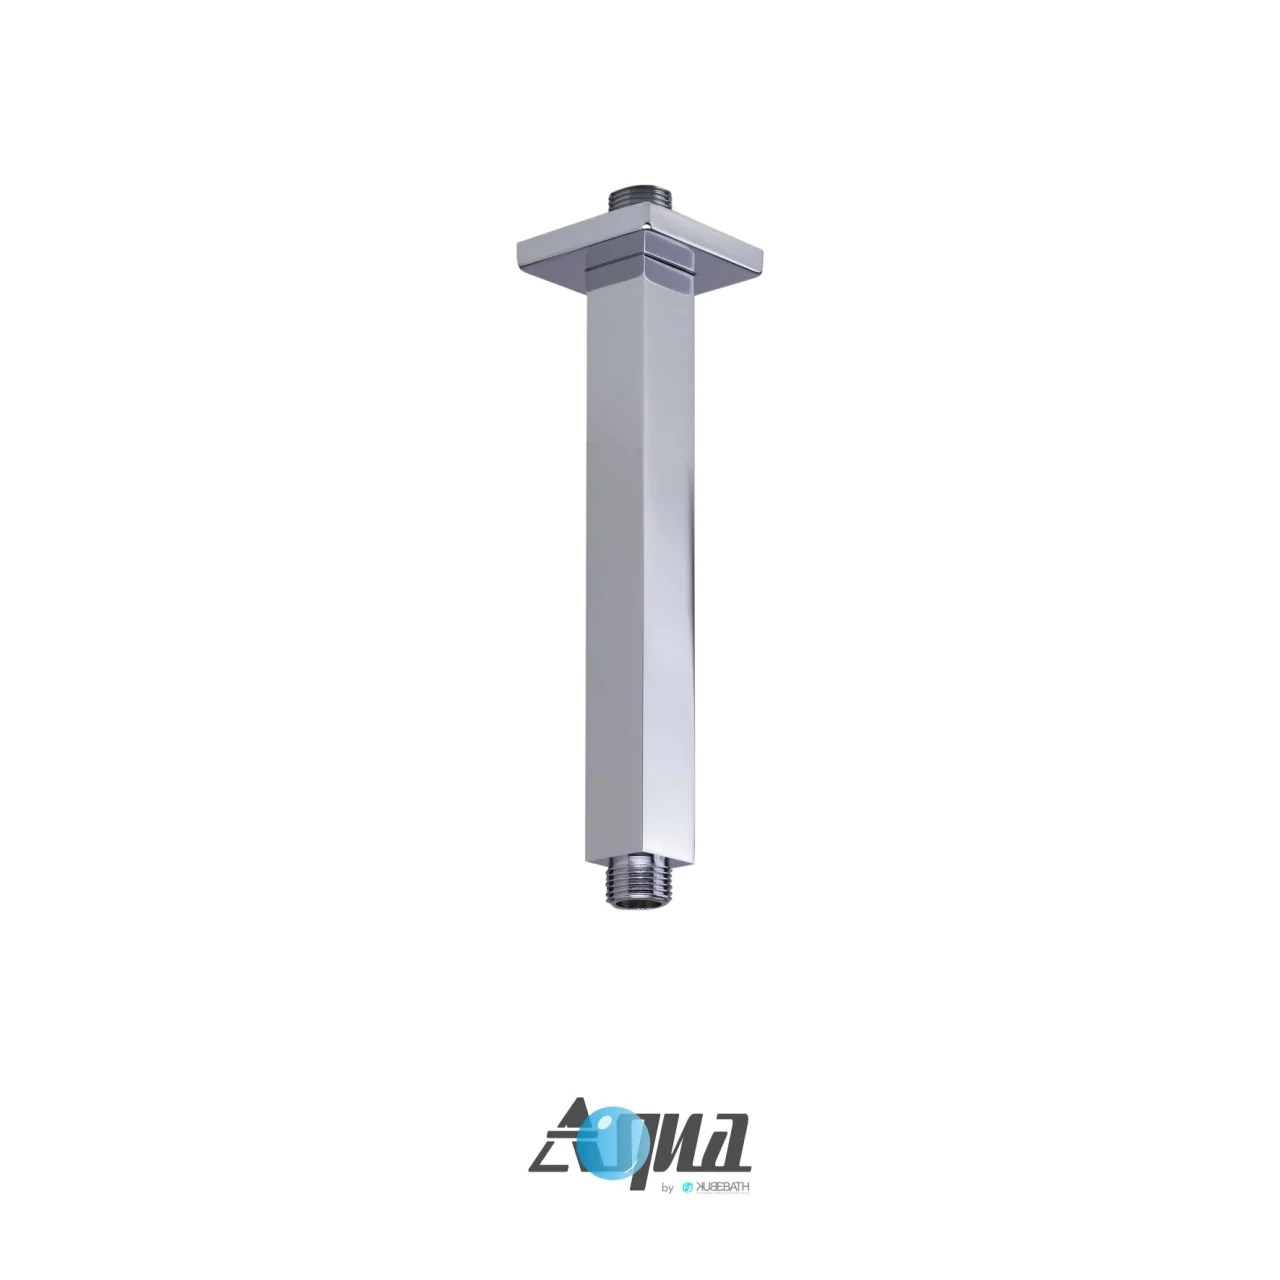 Aqua Piazza Brass Shower Set With 8 Ceiling Mount Square Rain Shower Handheld And Tub Filler